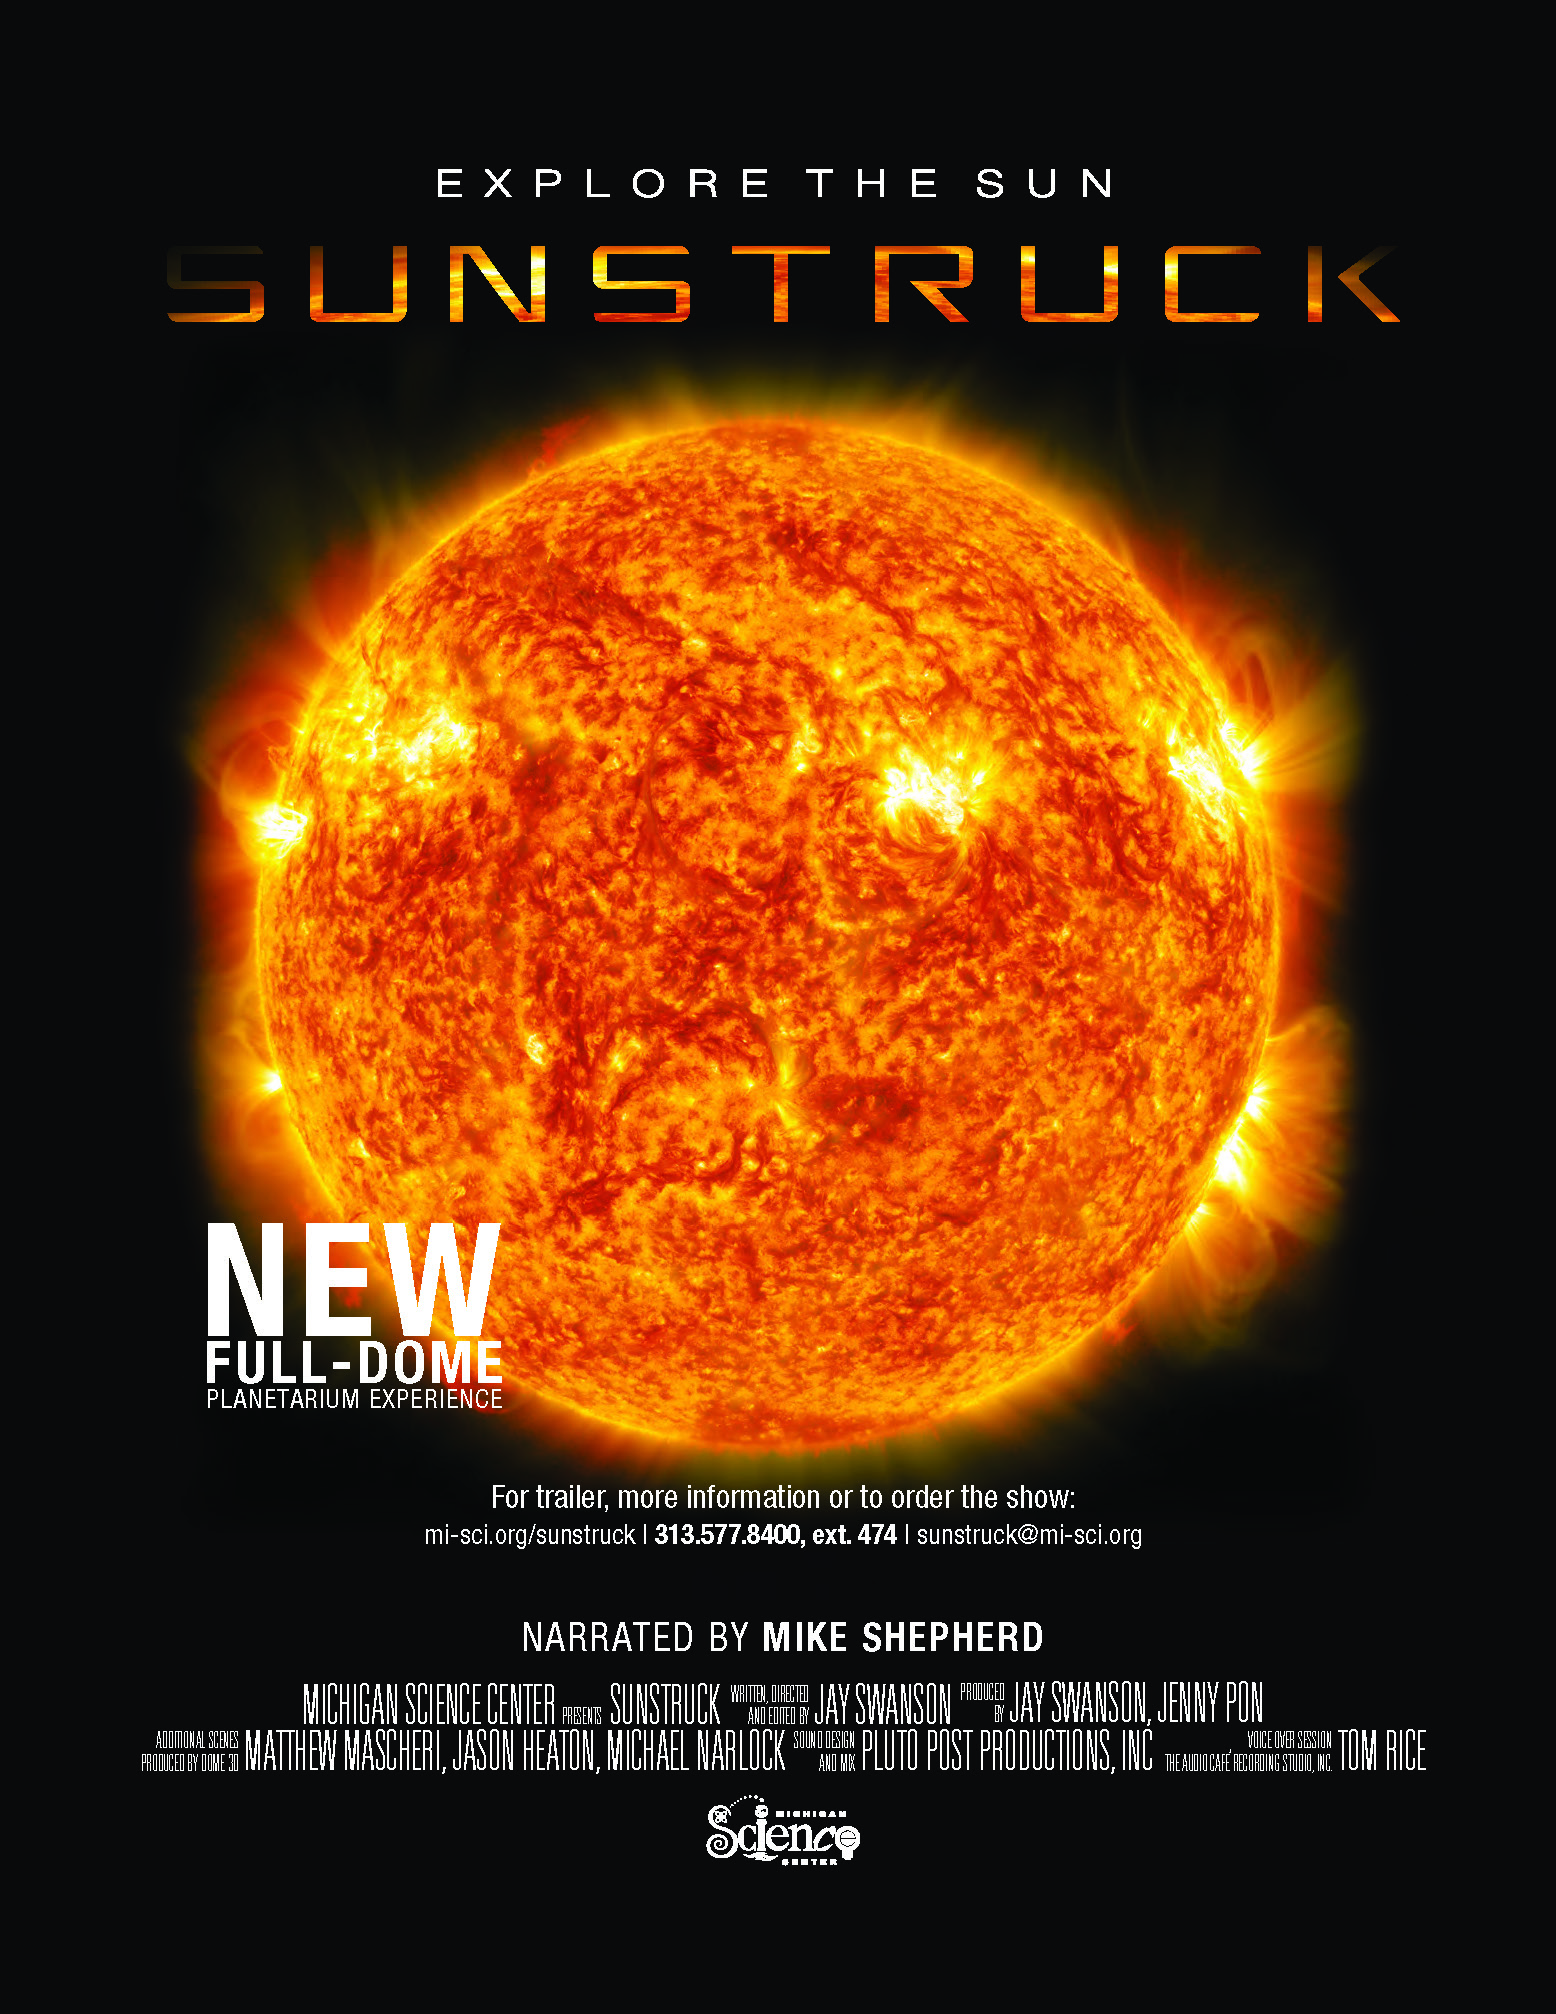 Sunstruck: Exploring the Sun